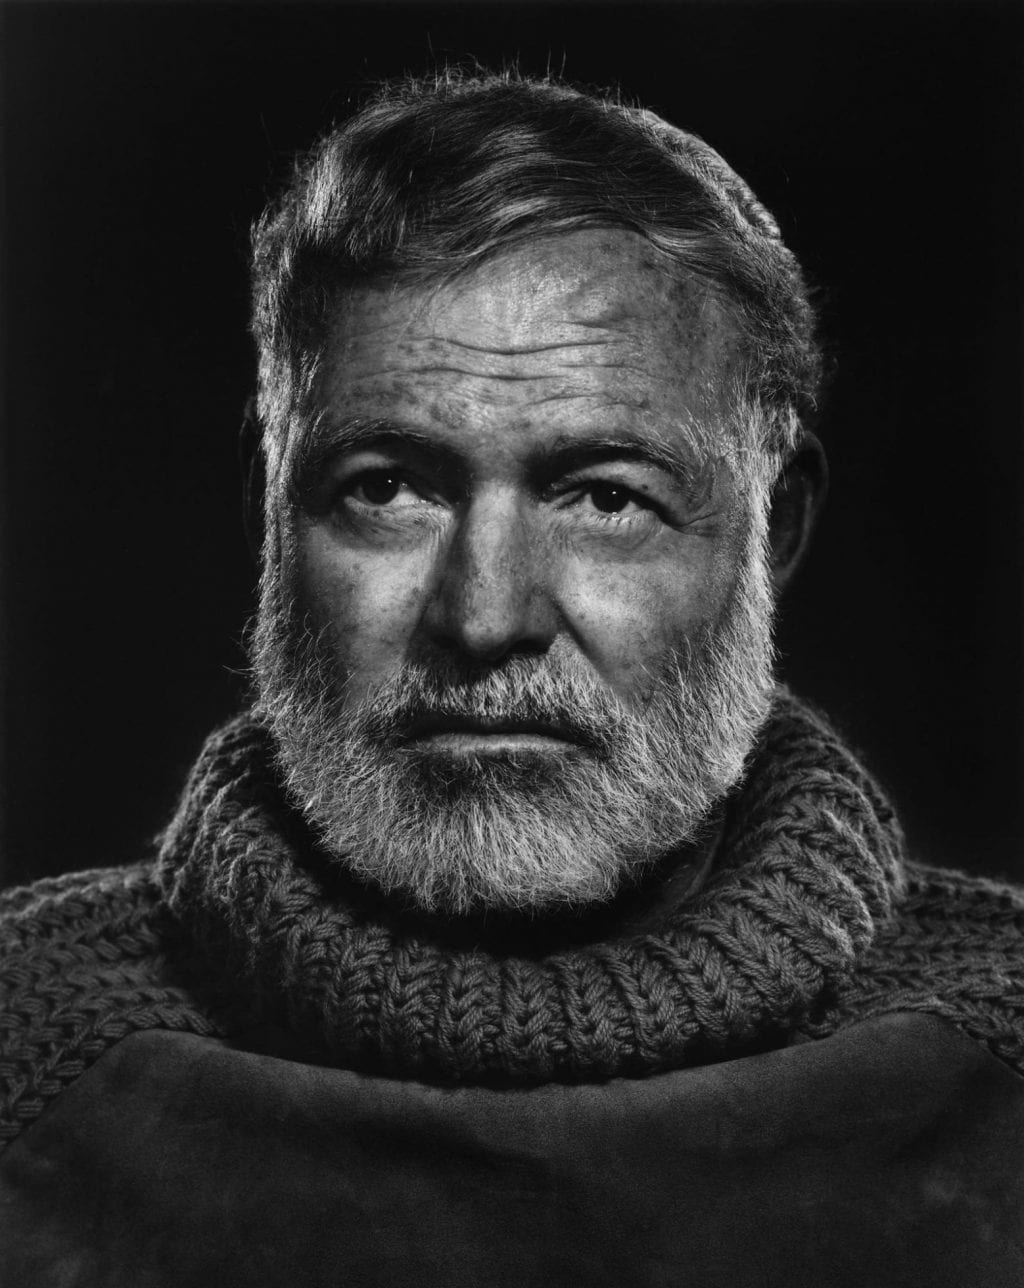 Declassified documents reveal the truth about the FBI's contribution to Ernest Hemingway's demise